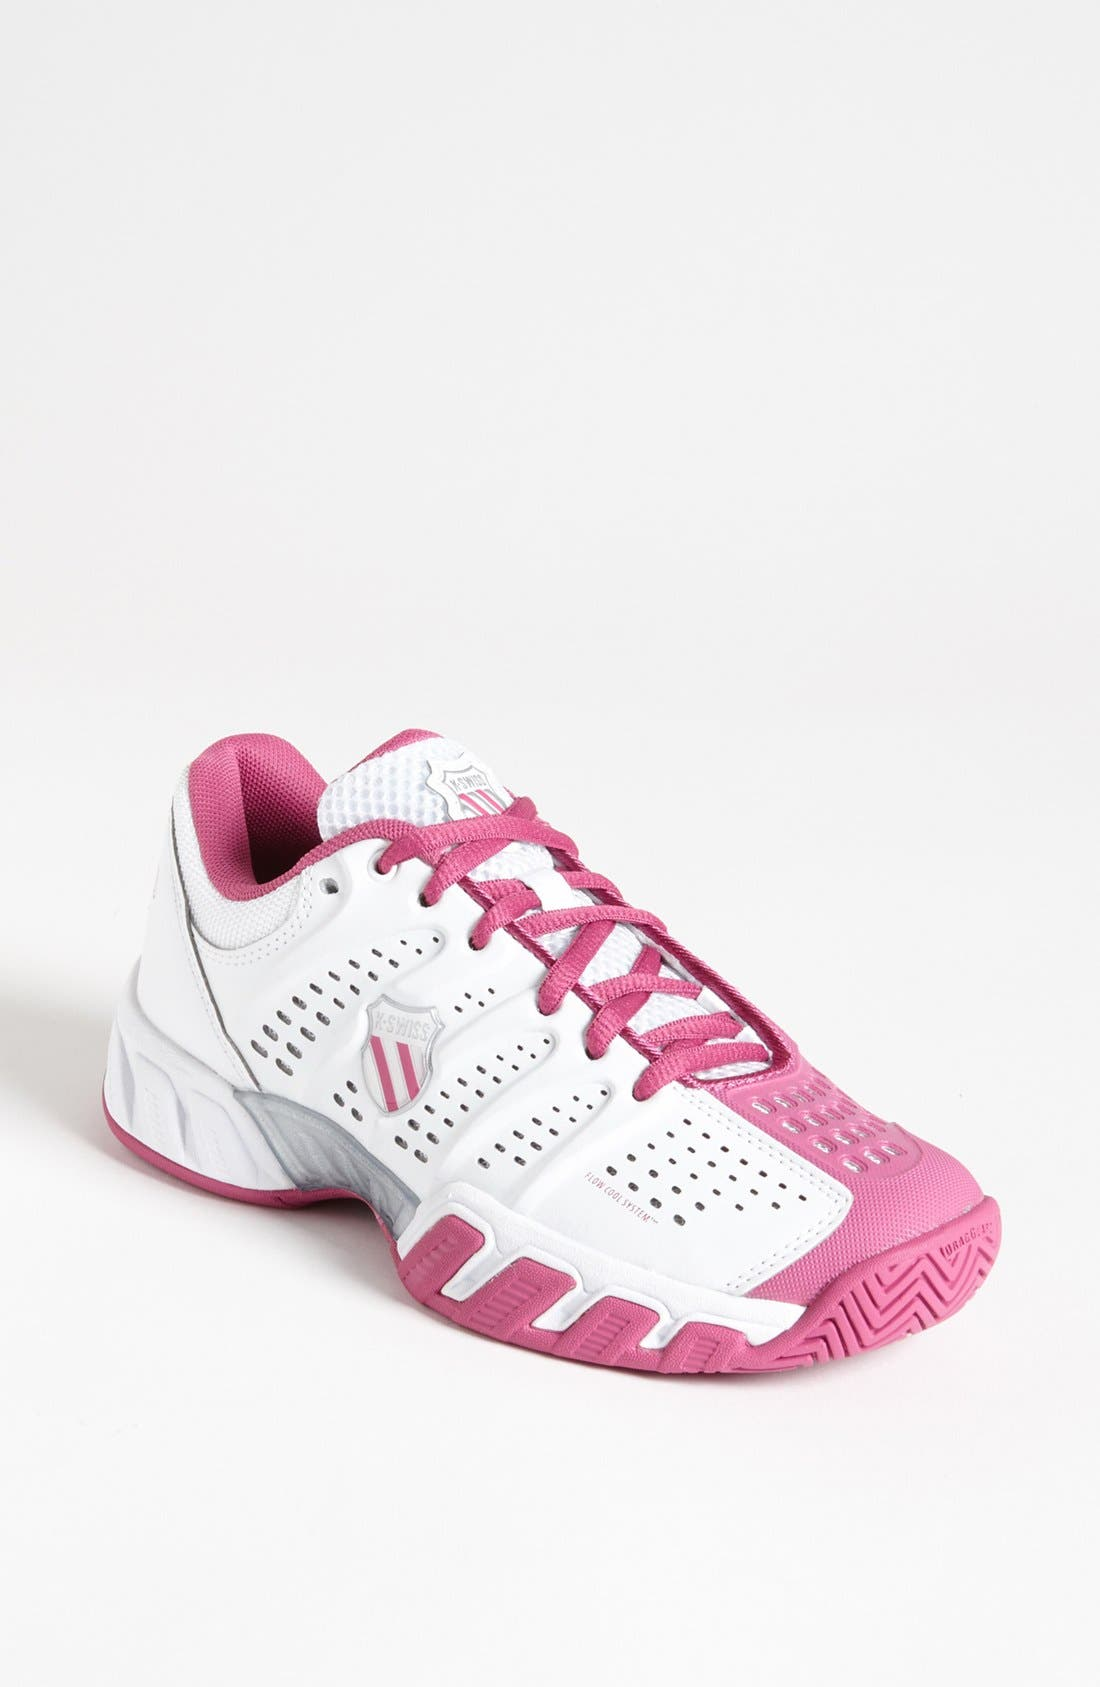 Main Image - K-Swiss 'Big Shot Light' Tennis Shoe (Women)